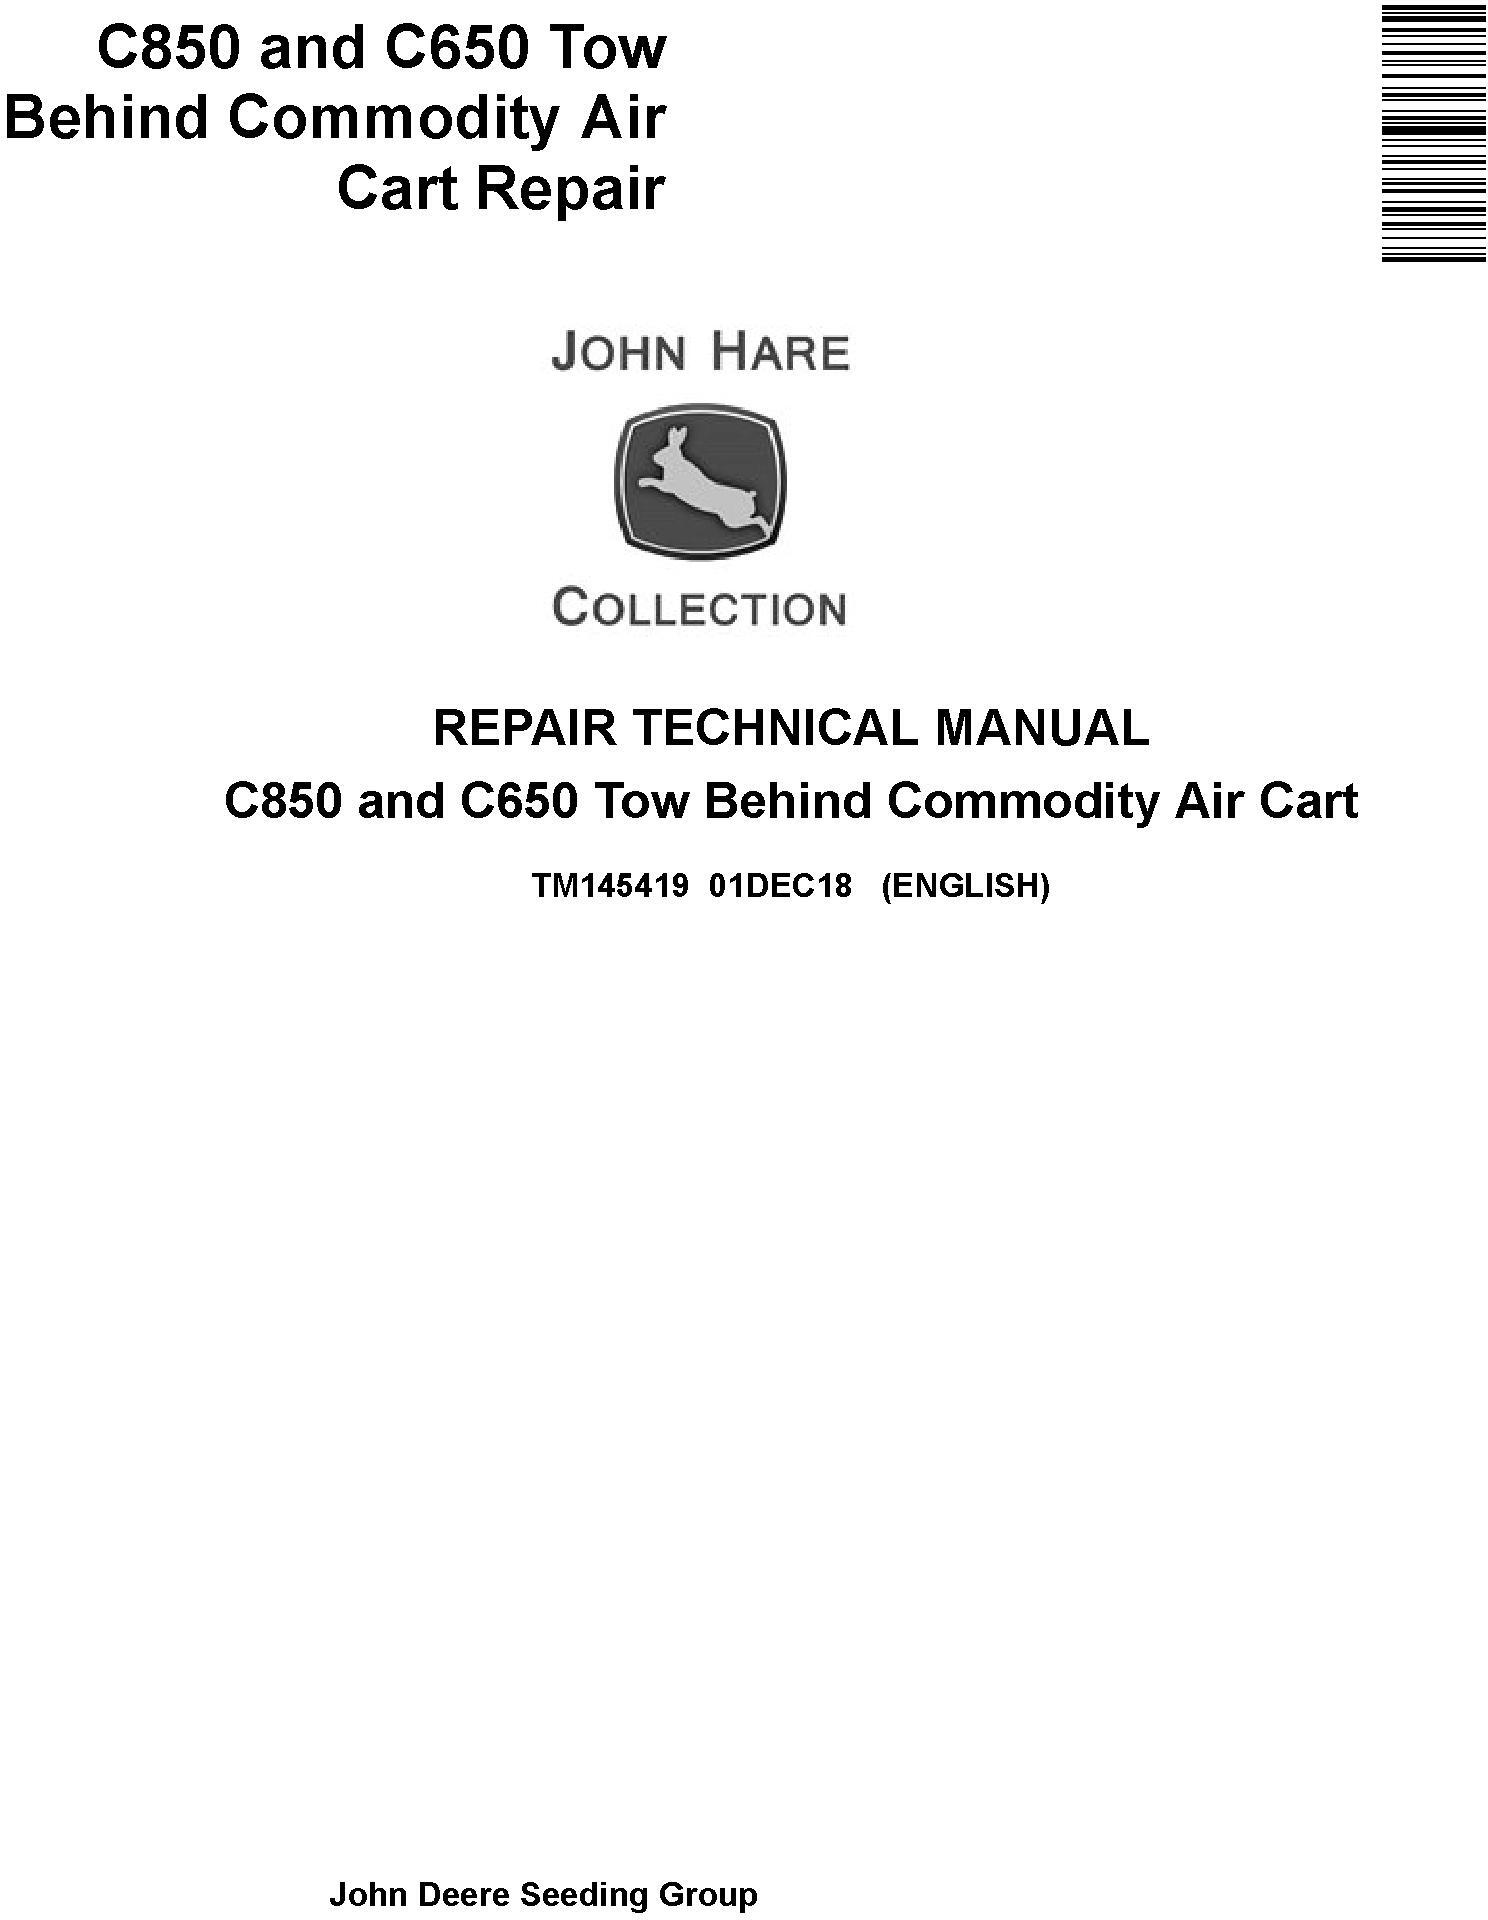 John Deere C850 and C650 Tow Behind Commodity Air Cart Repair Technical Service Manual (TM145419) - 19276